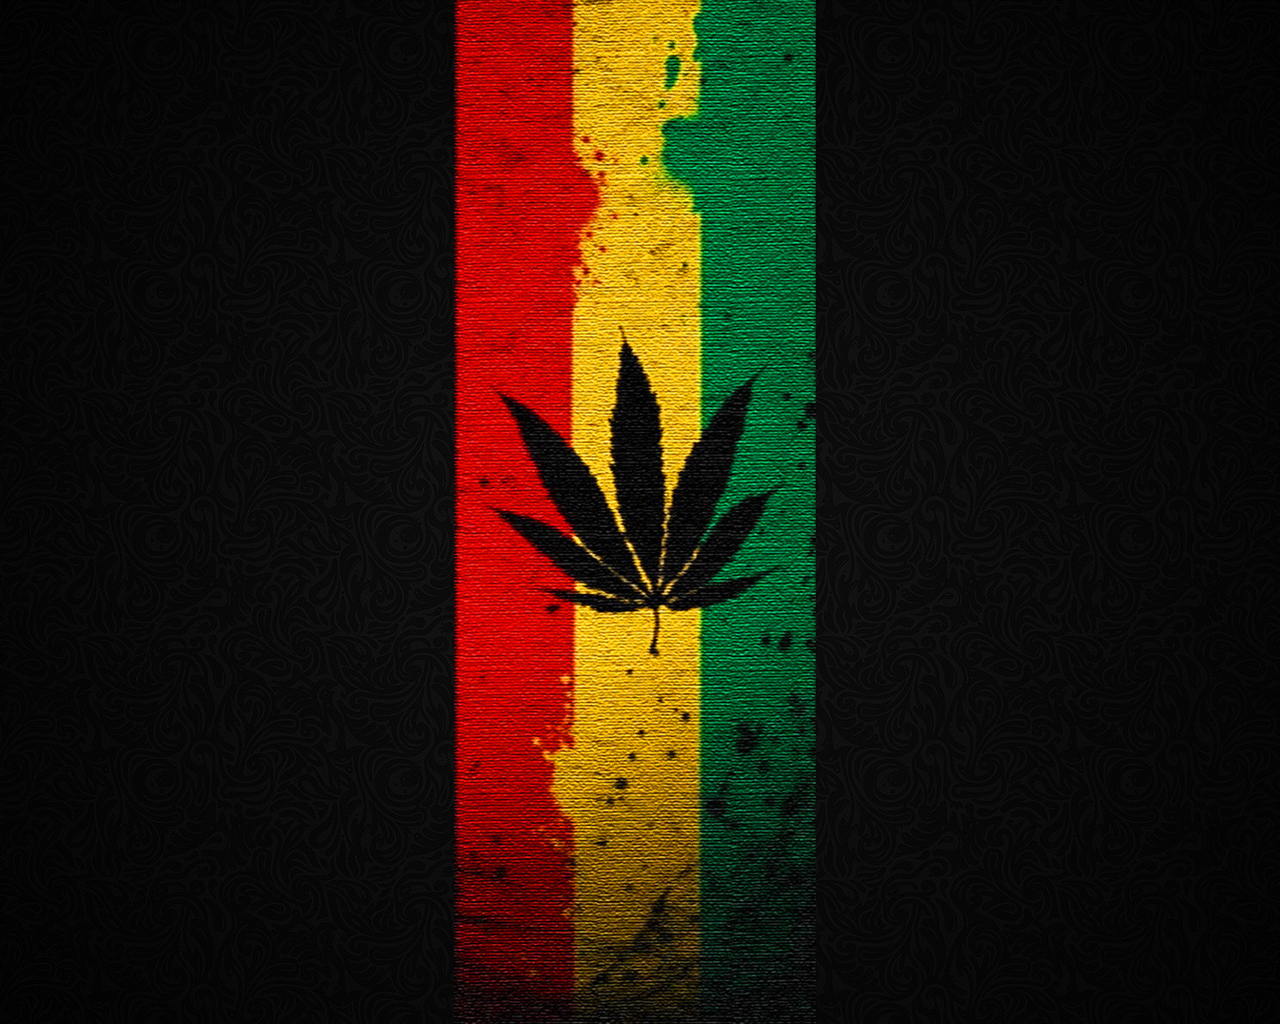 15627 download wallpaper Logos, Marijuana, Background screensavers and pictures for free